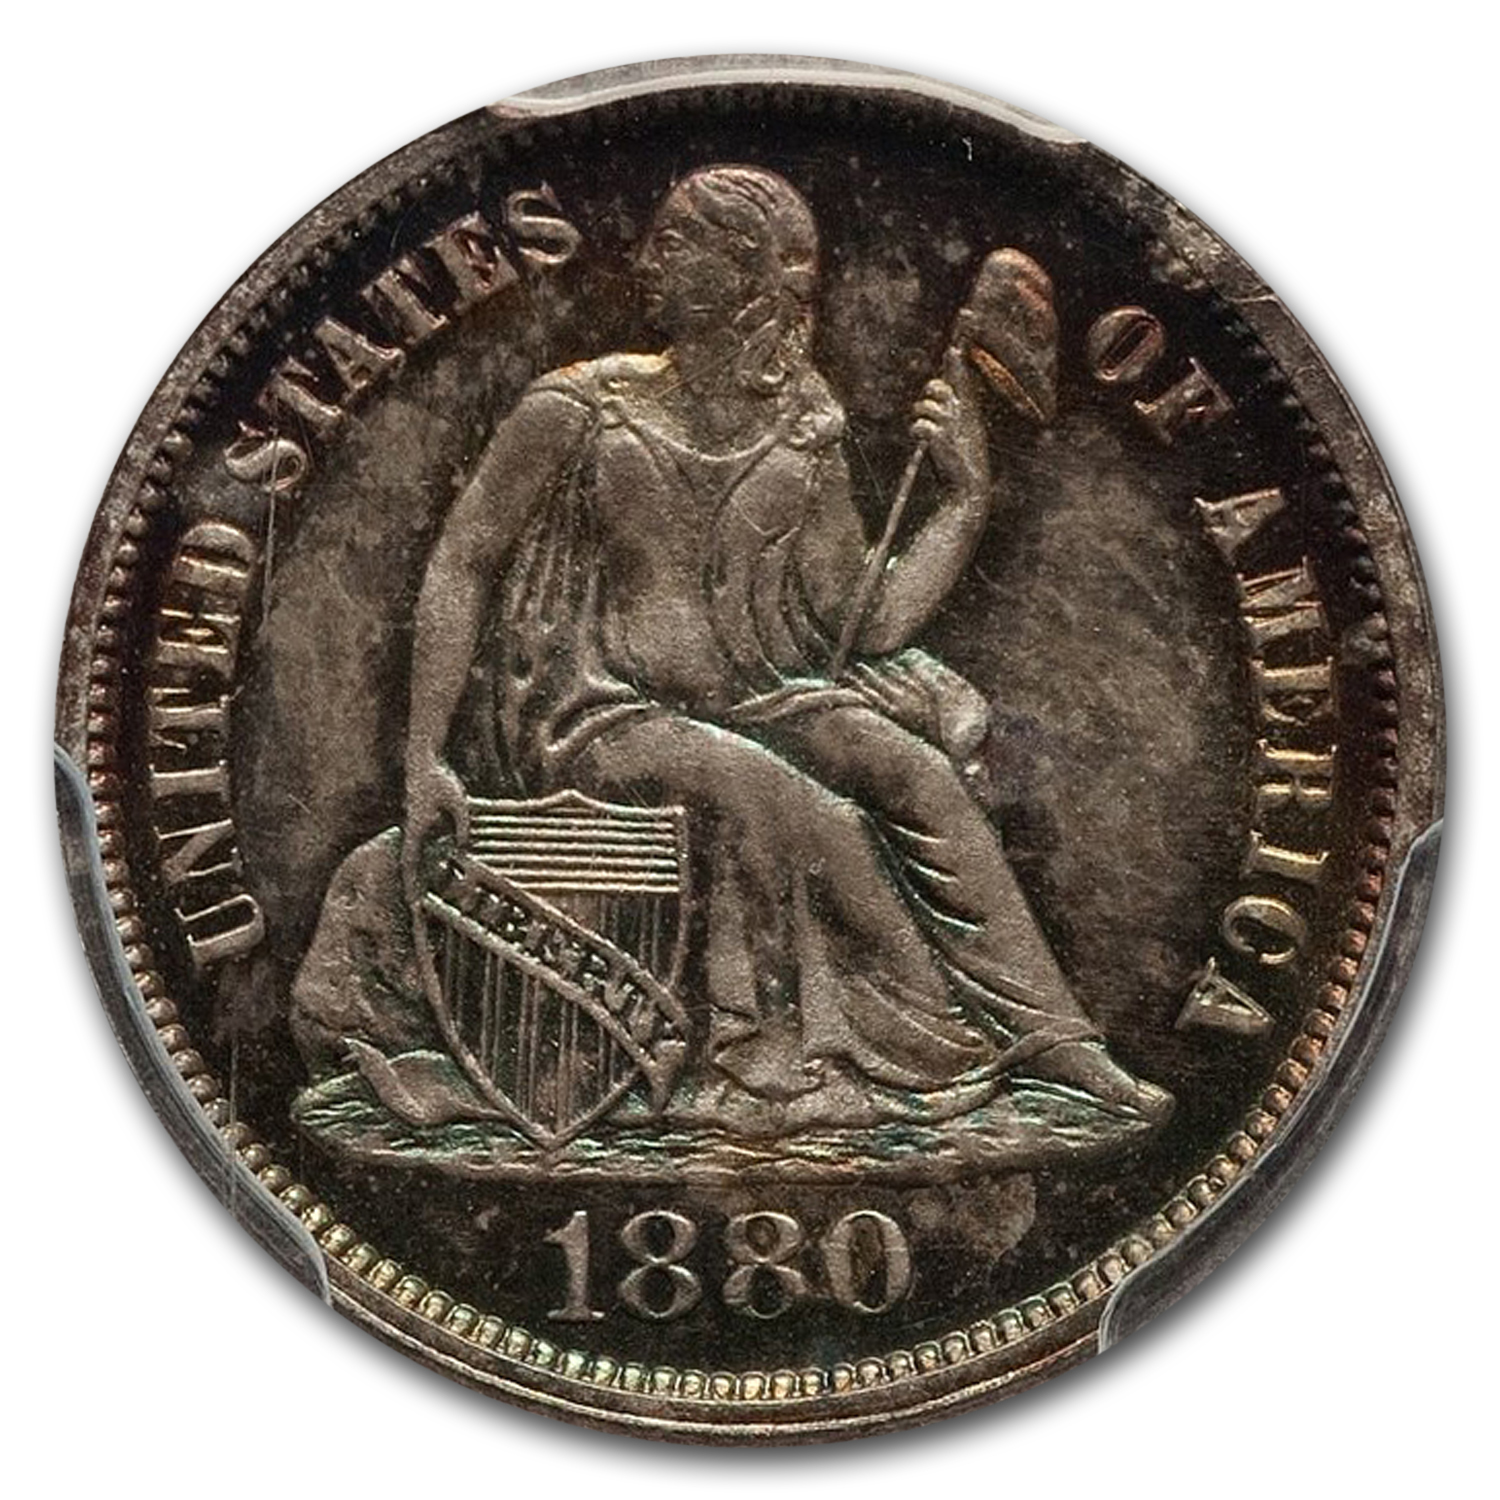 1880 Liberty Seated Dime PR-65 PCGS